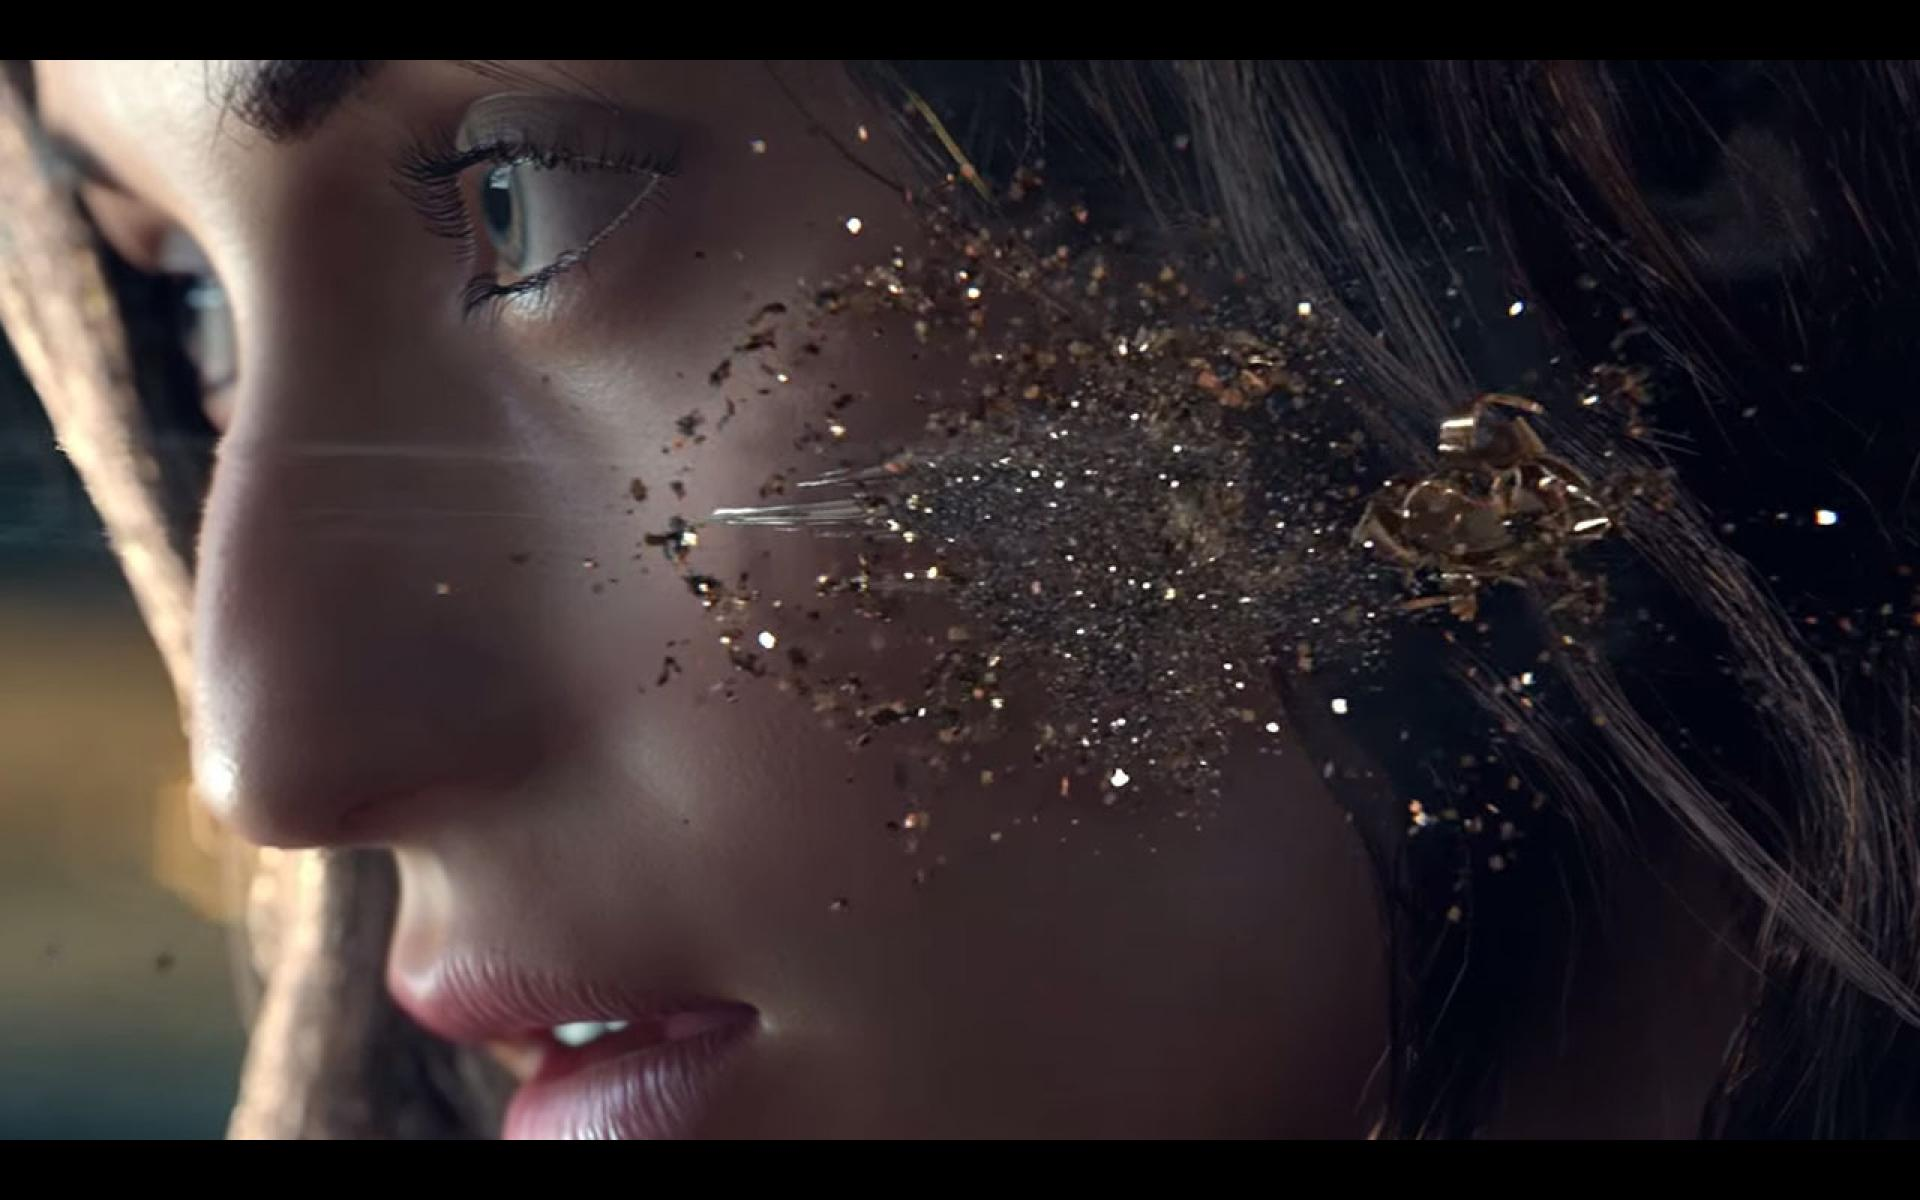 20+ Free Cyberpunk 2077 HD Wallpapers to Download